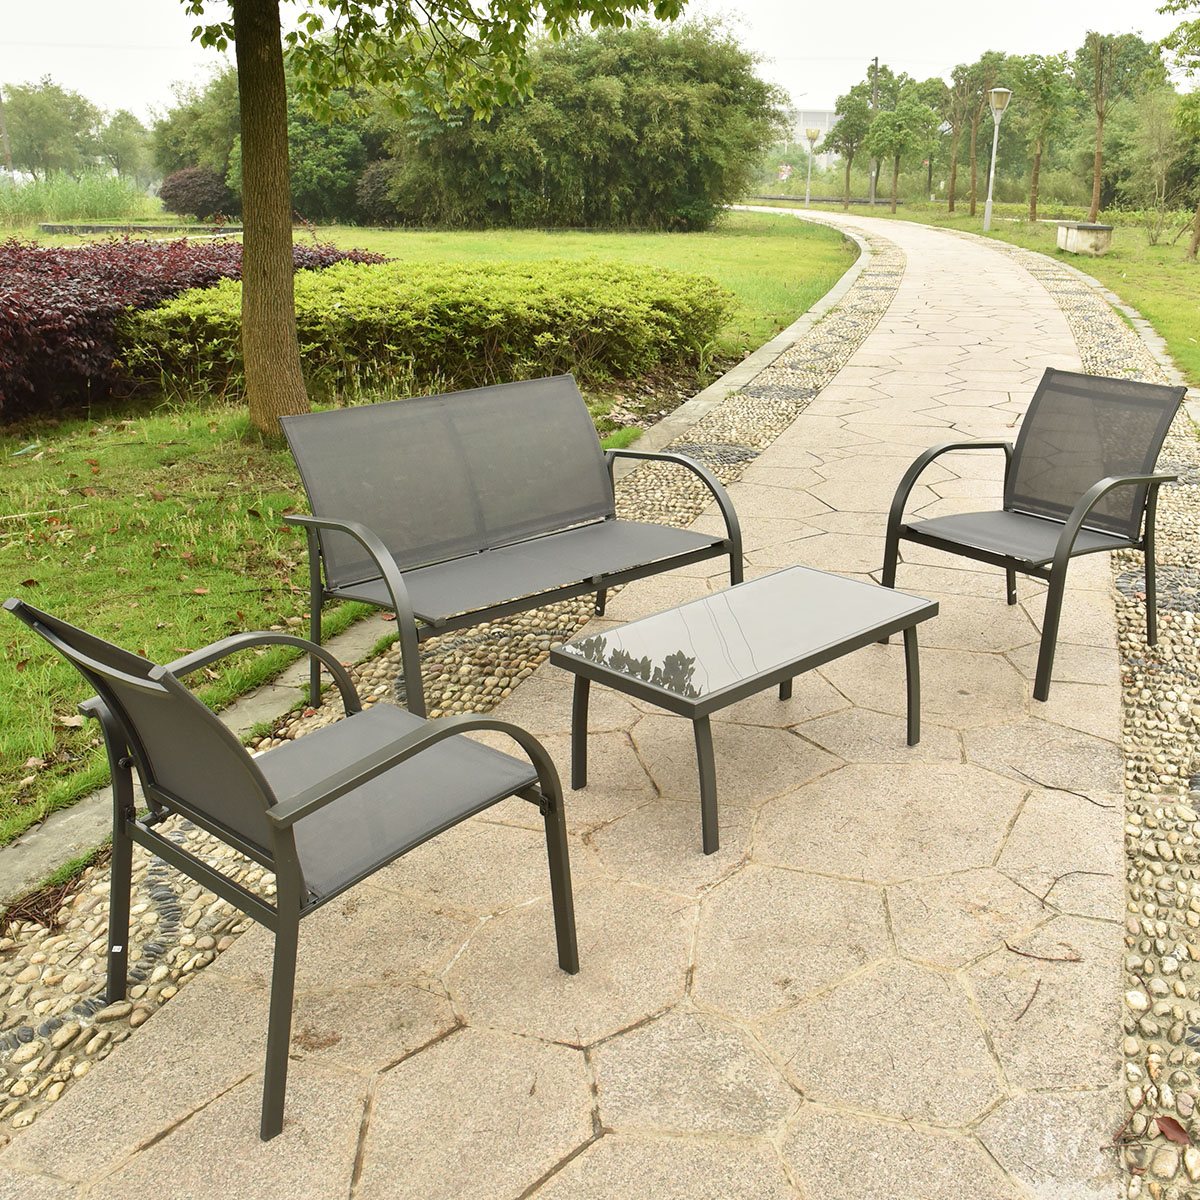 Costway 4Pcs Patio Garden Furniture Set Steel Frame Outdoor Lawn In 2019 Sofa Chairs (View 5 of 20)